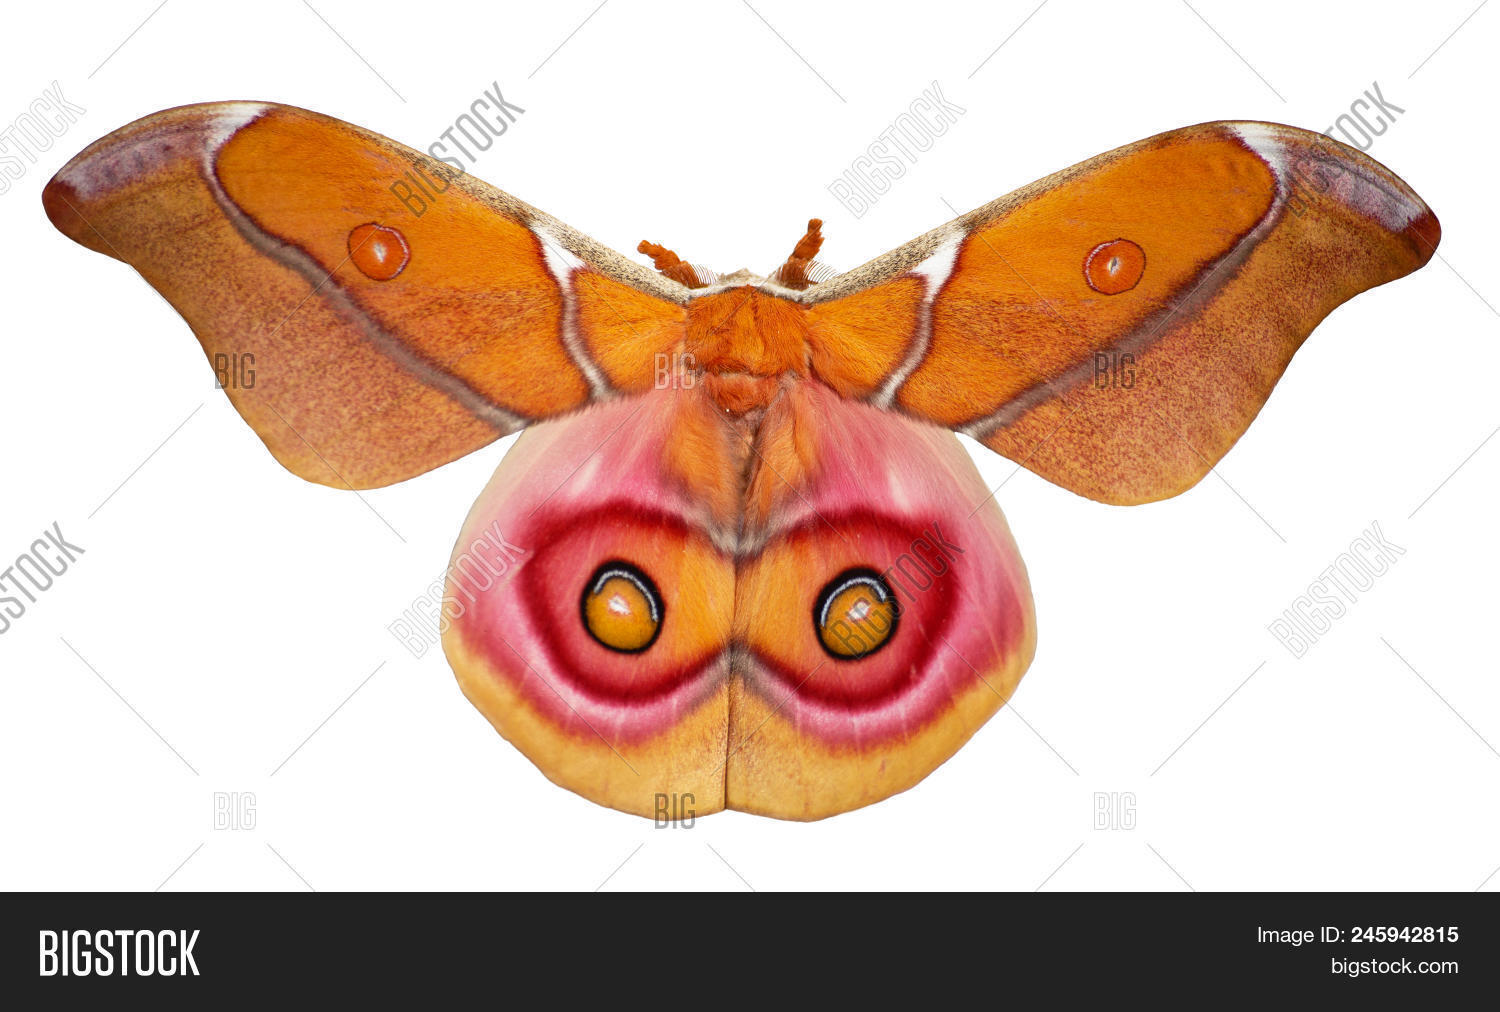 Africa,Antherina,Madagaskar,abdomen,antennae,aposematic,aposematism,attractive,background,beautiful,beauty,bright,brown,butterfly,card,close-up,closeup,coloration,cut,entomology,eyespot,fauna,flight,fly,fragile,frighten,greeting,insect,invertebrate,isolated,lepidoptera,life,macro,male,moth,natural,no,ochre,on,out,pink,red,saturniid,saturniidae,sematic,silk,suraka,warning,white,wing